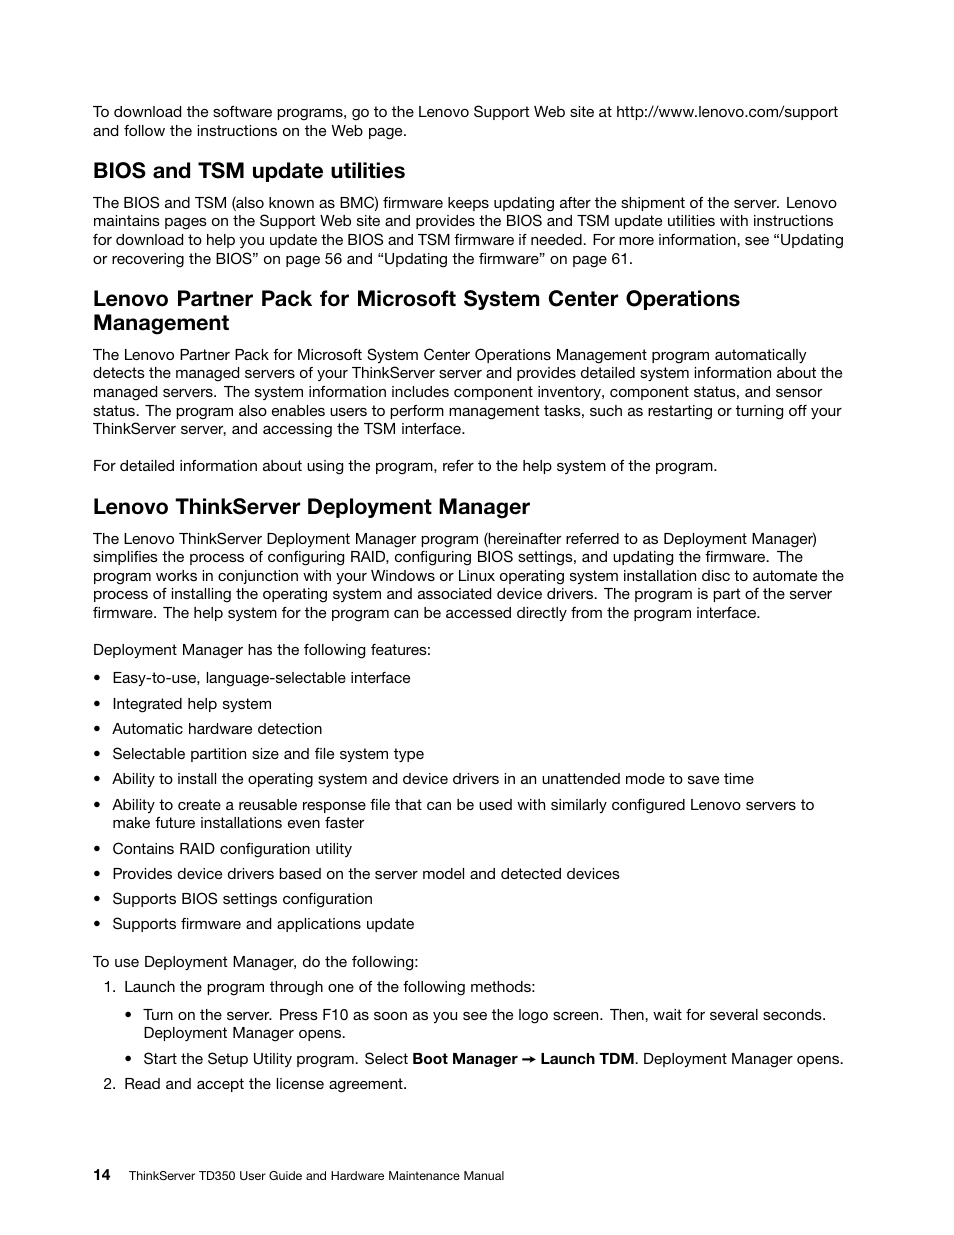 Bios and tsm update utilities, Lenovo thinkserver deployment manager